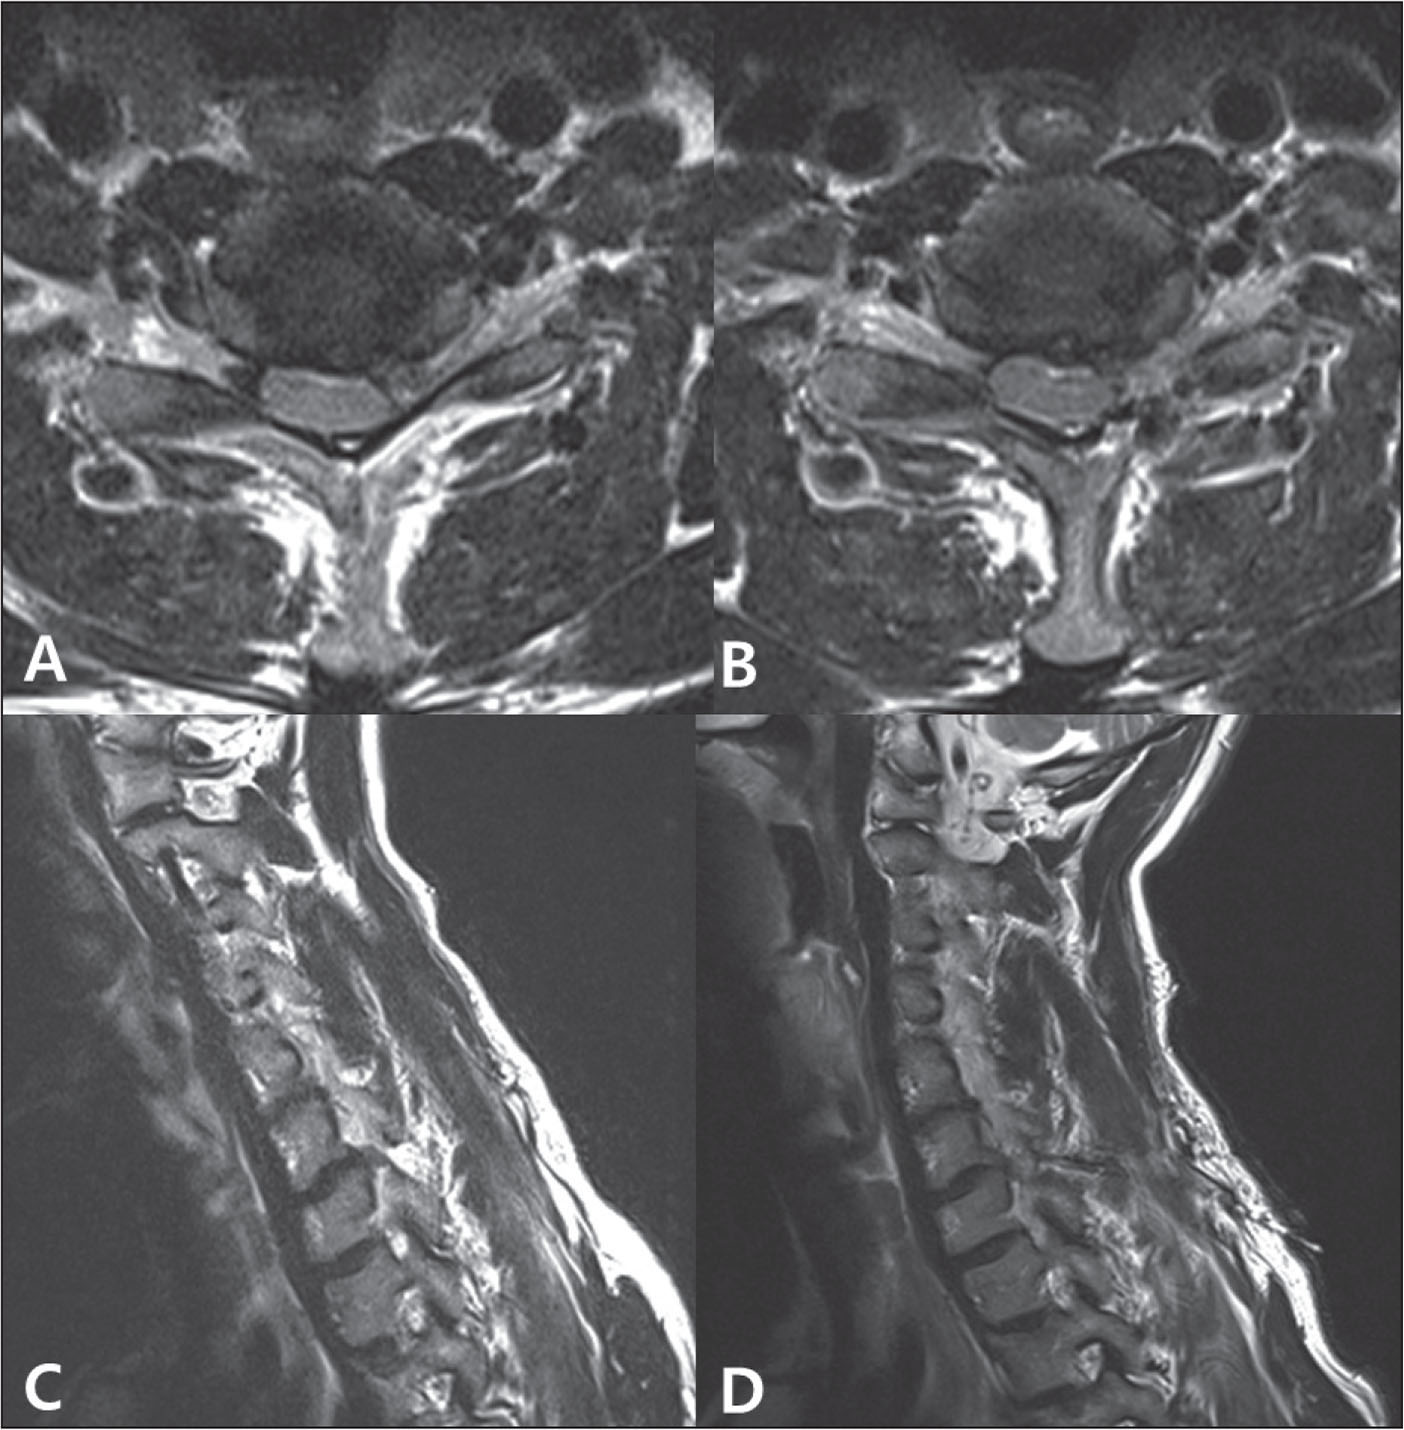 Preoperative axial (A) and sagittal (C) magnetic resonance images. At the left C6–C7 level, the soft disk protrudes laterally. Postoperative axial (B) and sagittal (D) magnetic resonance images show that the protruded disk was removed.